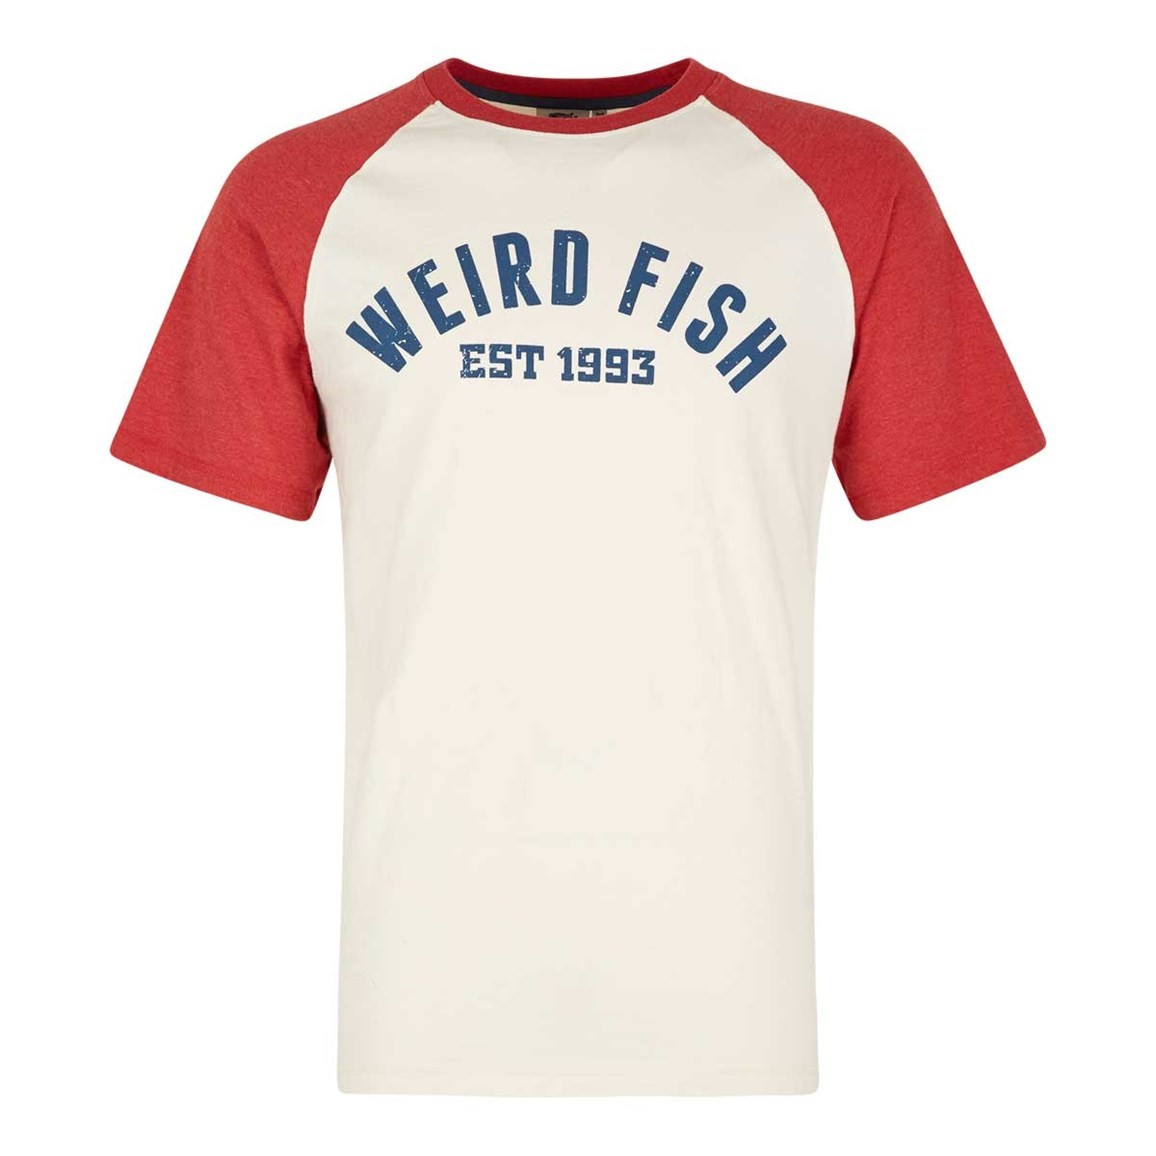 Weird Fish Ying Jersey Raglan Graphic Print T-Shirt Baked Apple